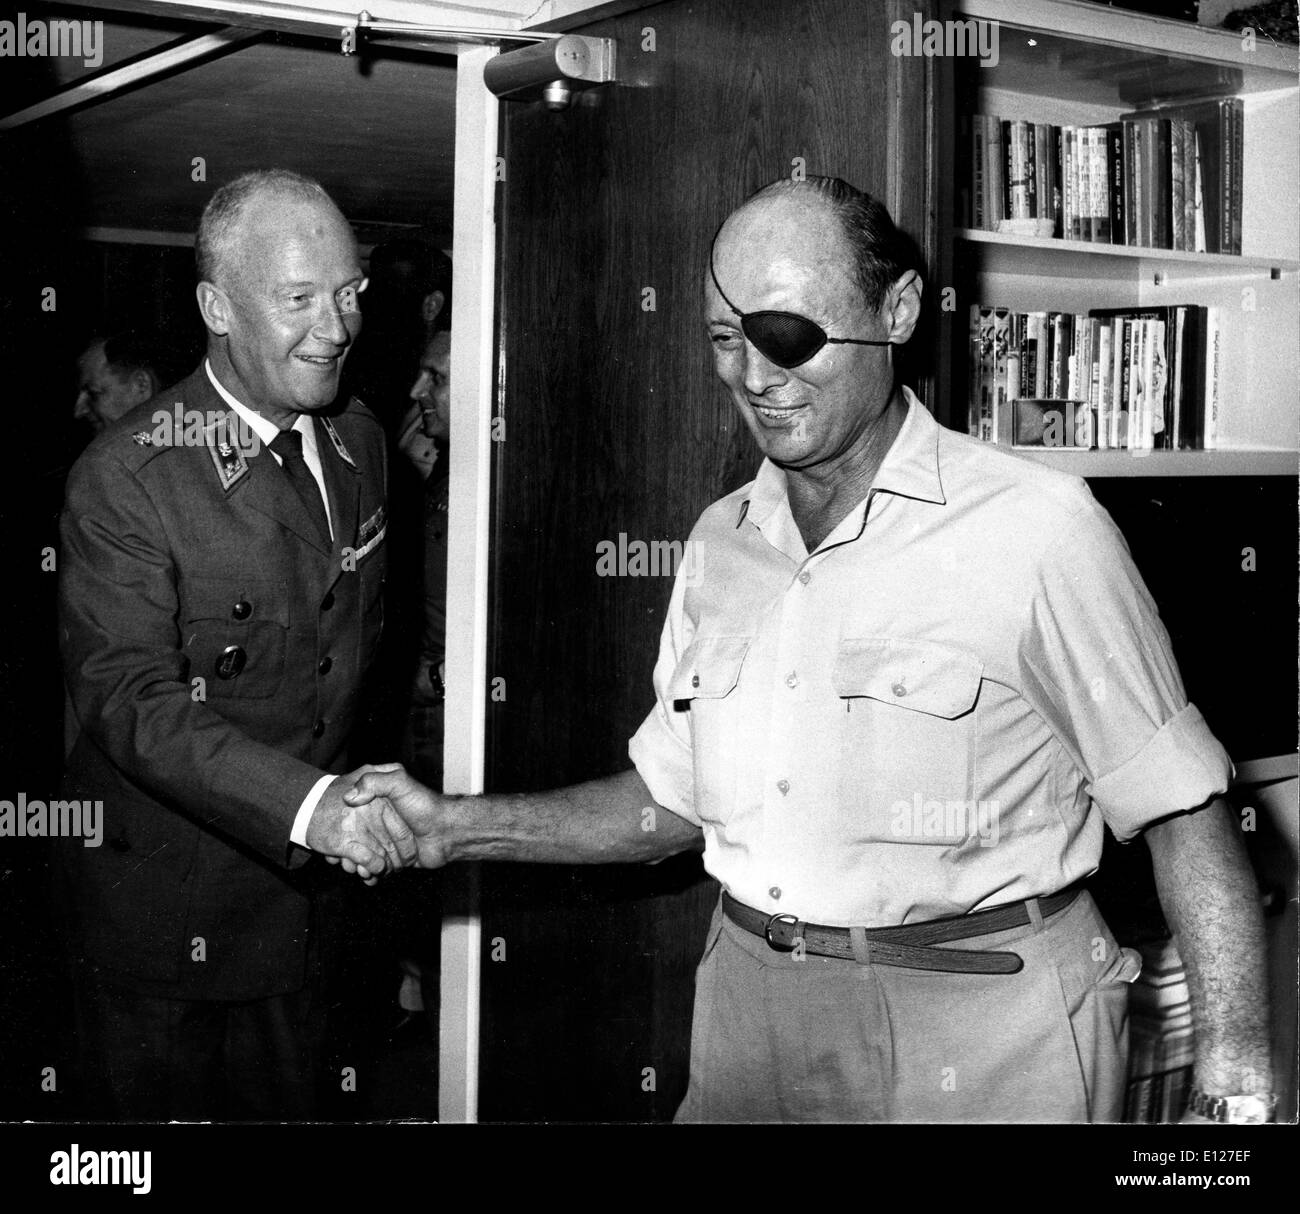 Apr 01, 2009 - London, England, United Kingdom - MOSHE DAYAN, (20 May 1915 Ð 16 October 1981) was an Israeli military leader and politician. The fourth Chief of Staff of the Israel Defense Forces (1953Ð1958), he became a fighting symbol to the world of the new State of Israel. He went on to become Defense Minister and later Foreign Minister of Israel. Dayan was using binoculars they were struck by a French bullet, propelling metal and glass fragments into his left eye and causing it severe damage. Dayan lost the eye and he was forced to adopt the black eyepatch that became his trademark - Stock Image